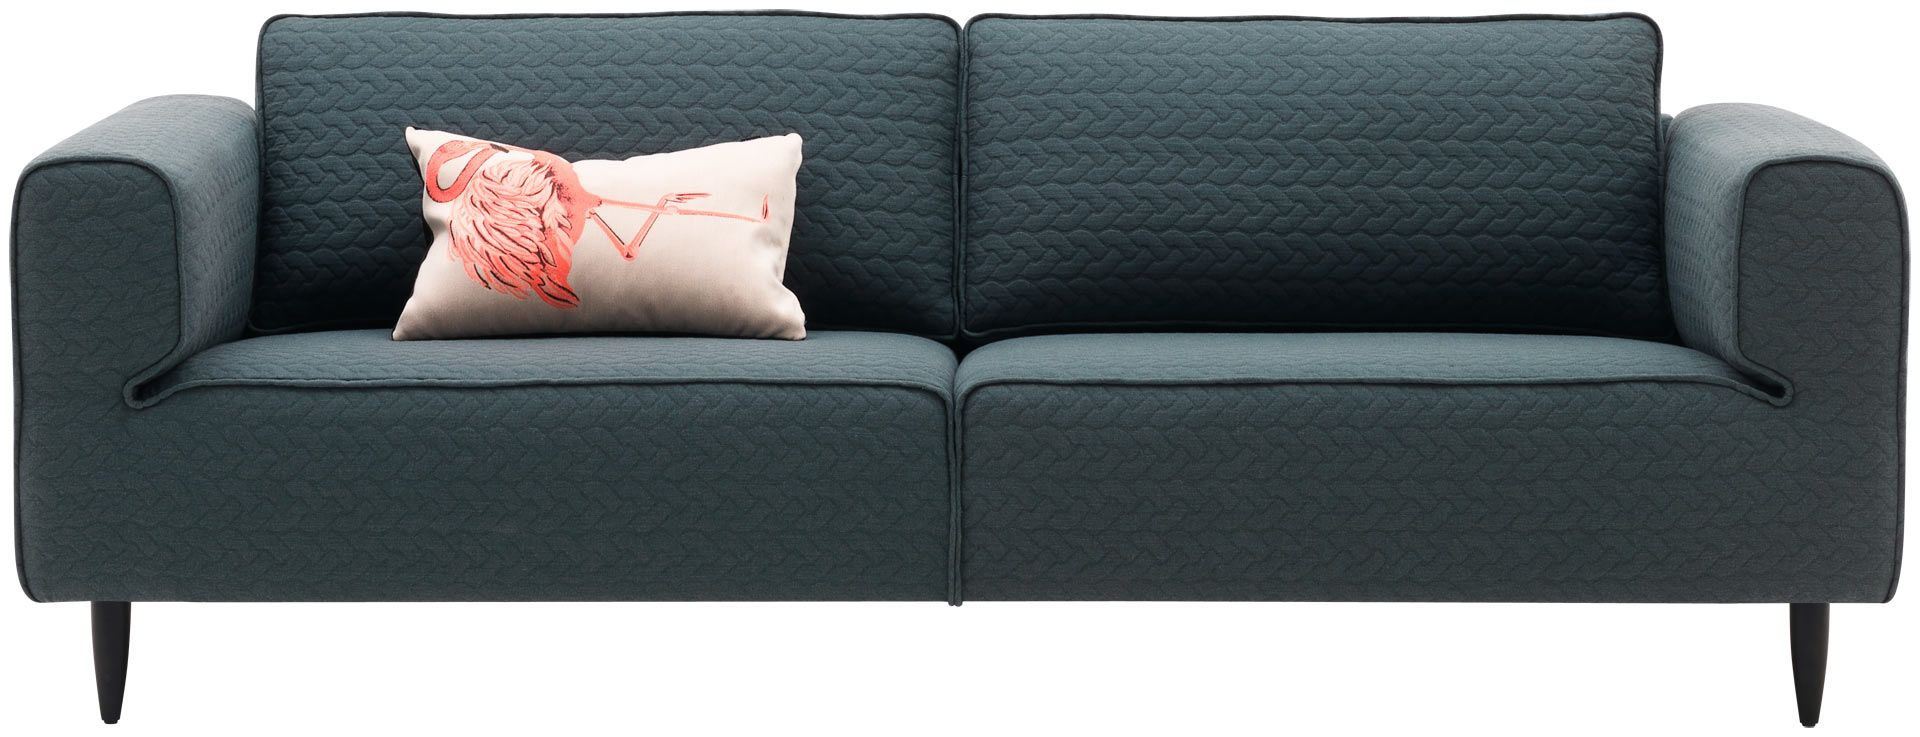 sofas for small living from boconcept seating. Black Bedroom Furniture Sets. Home Design Ideas